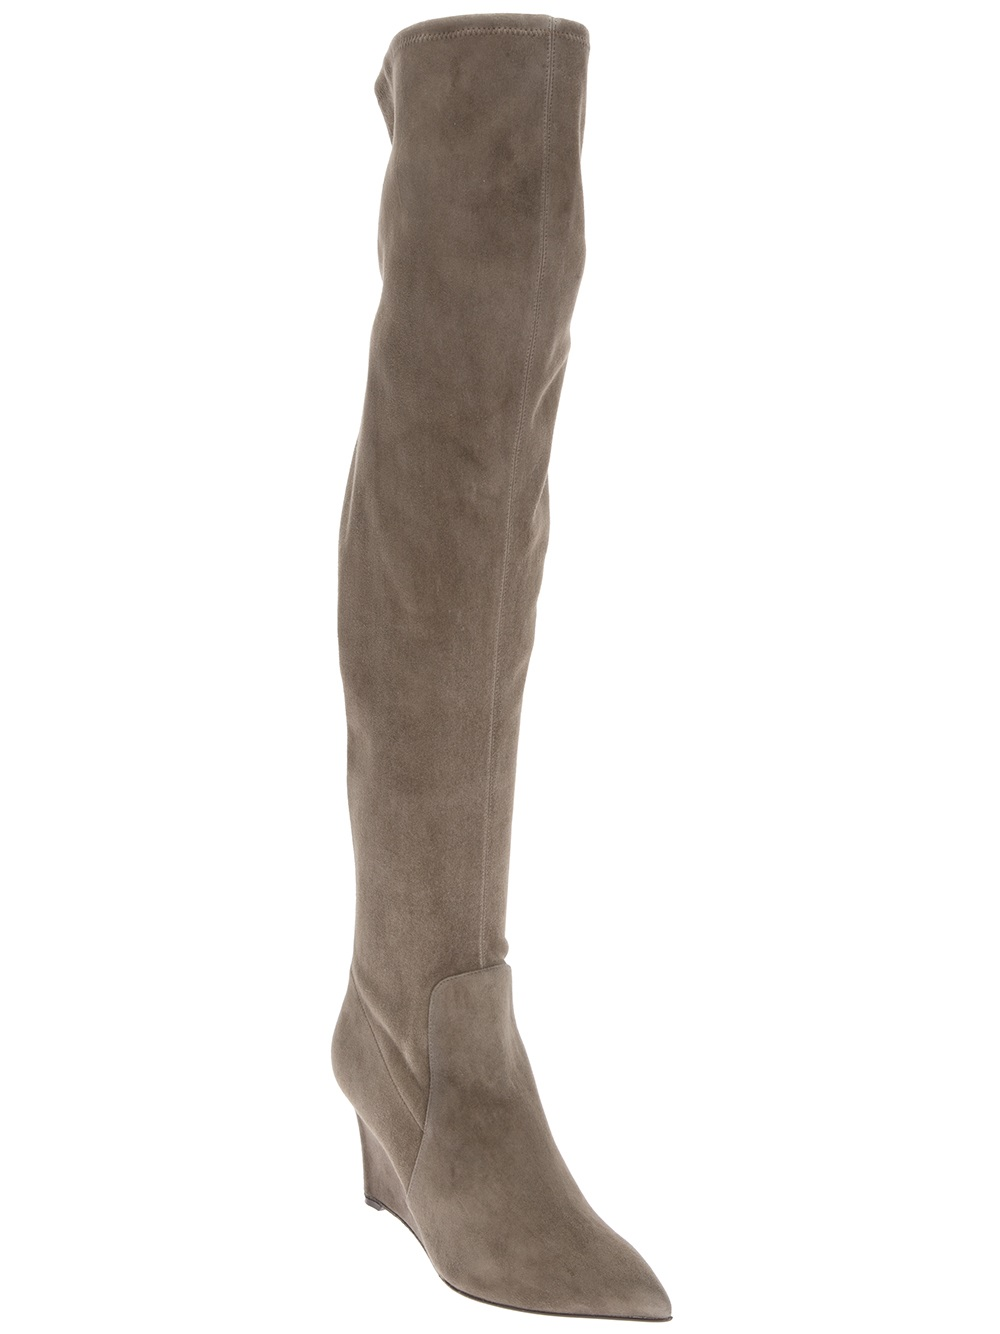 grey knee high ugg boots